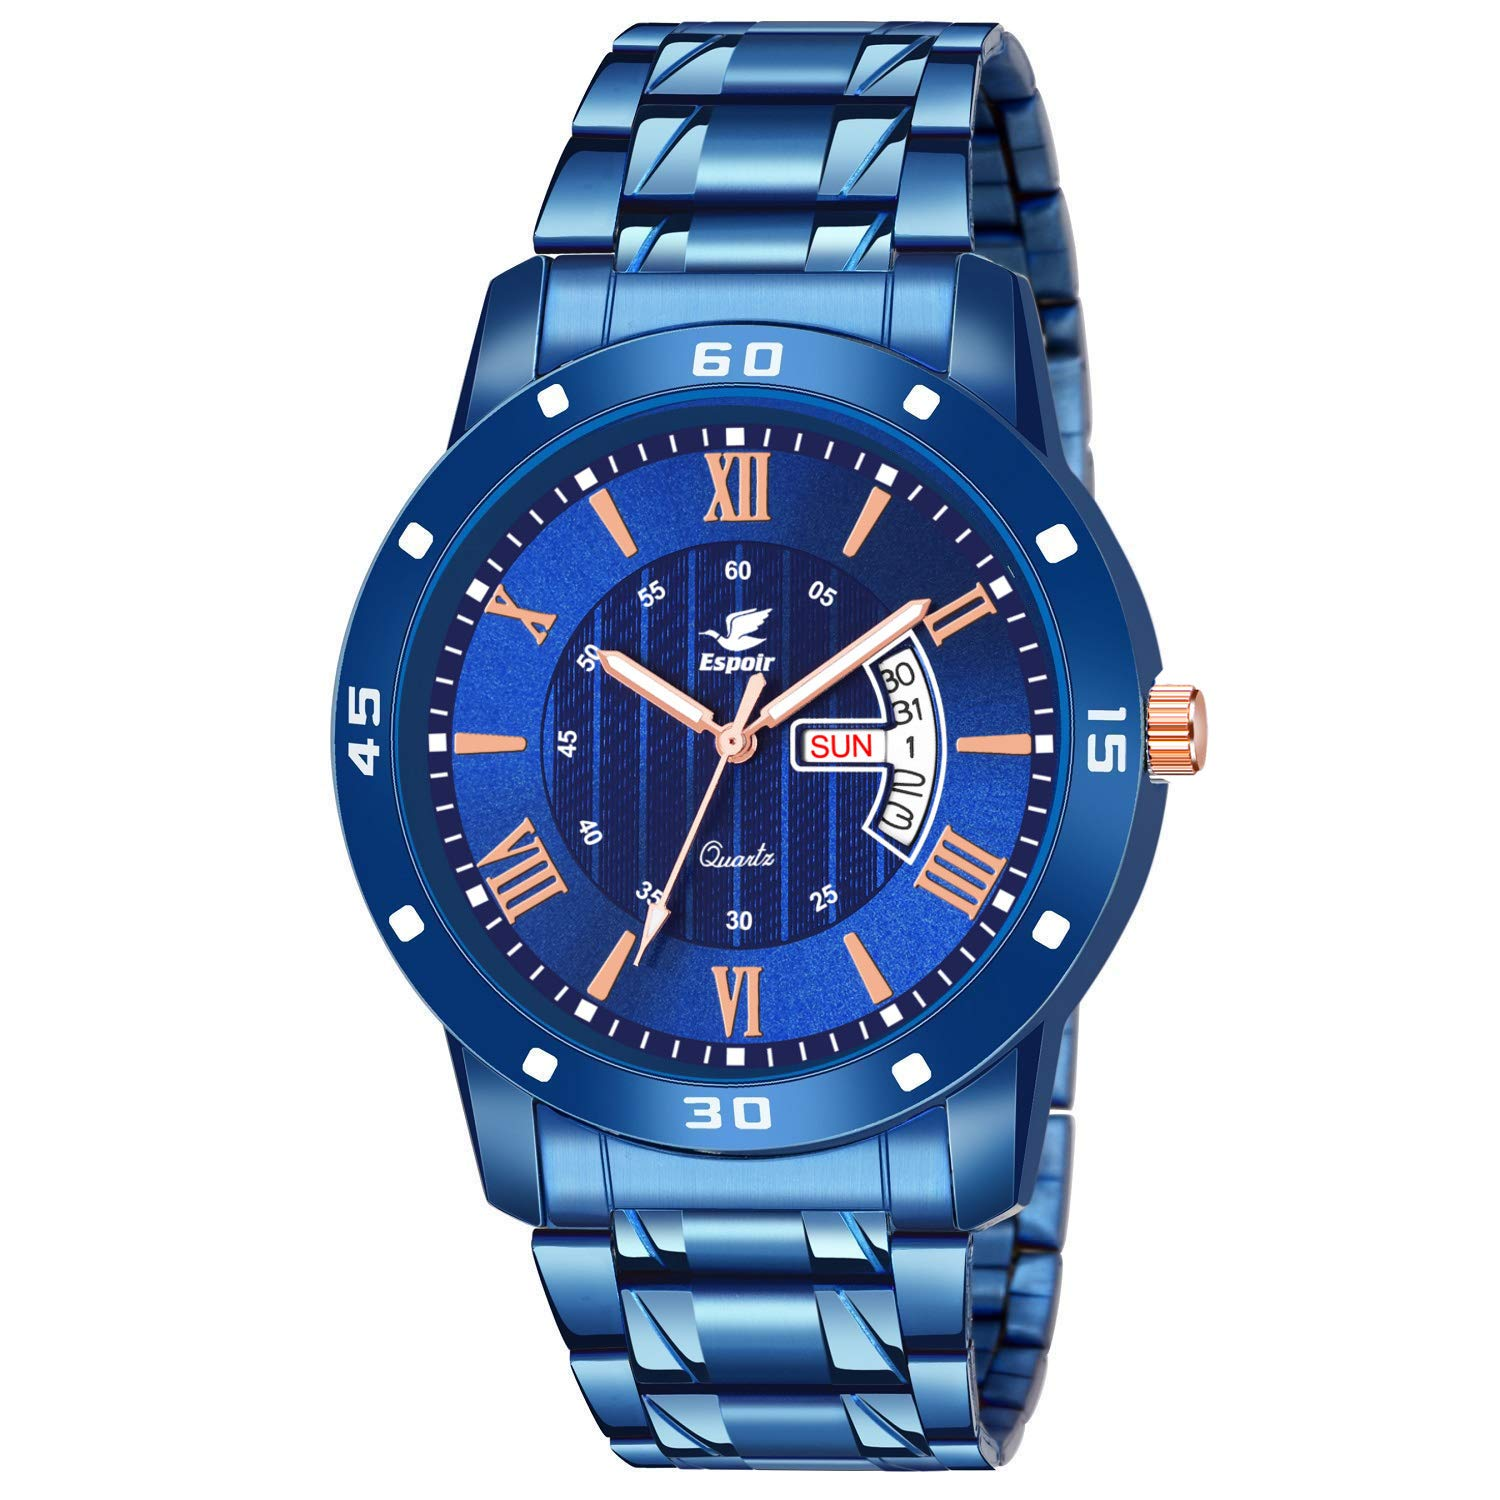 Espoir Analogue Stainless Steel Blue Dial Day and Date Boy's and Men's Watch – TONK0507